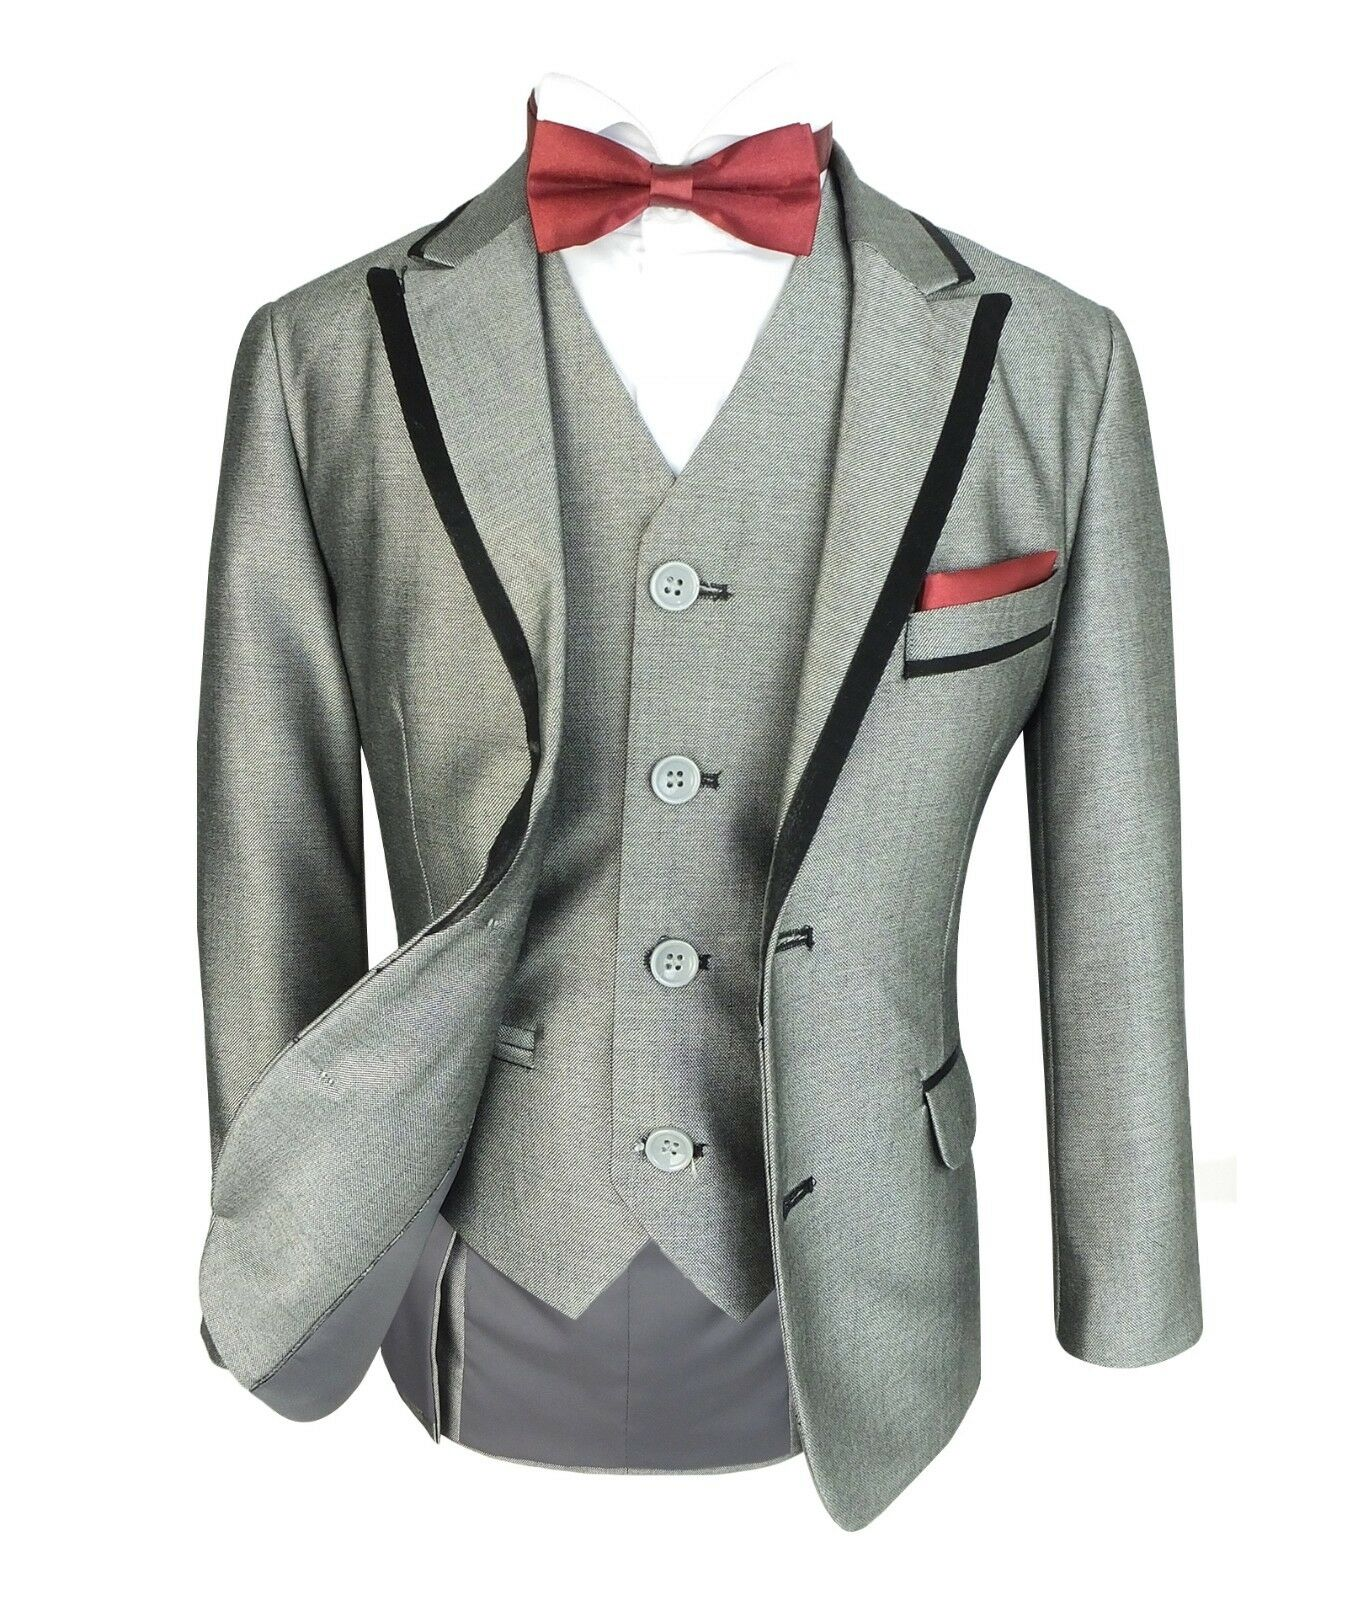 487b99ecdfb7 Boys Formal Tuxedo Dinner Suit in Light Grey Kids Pageboy Wedding ...